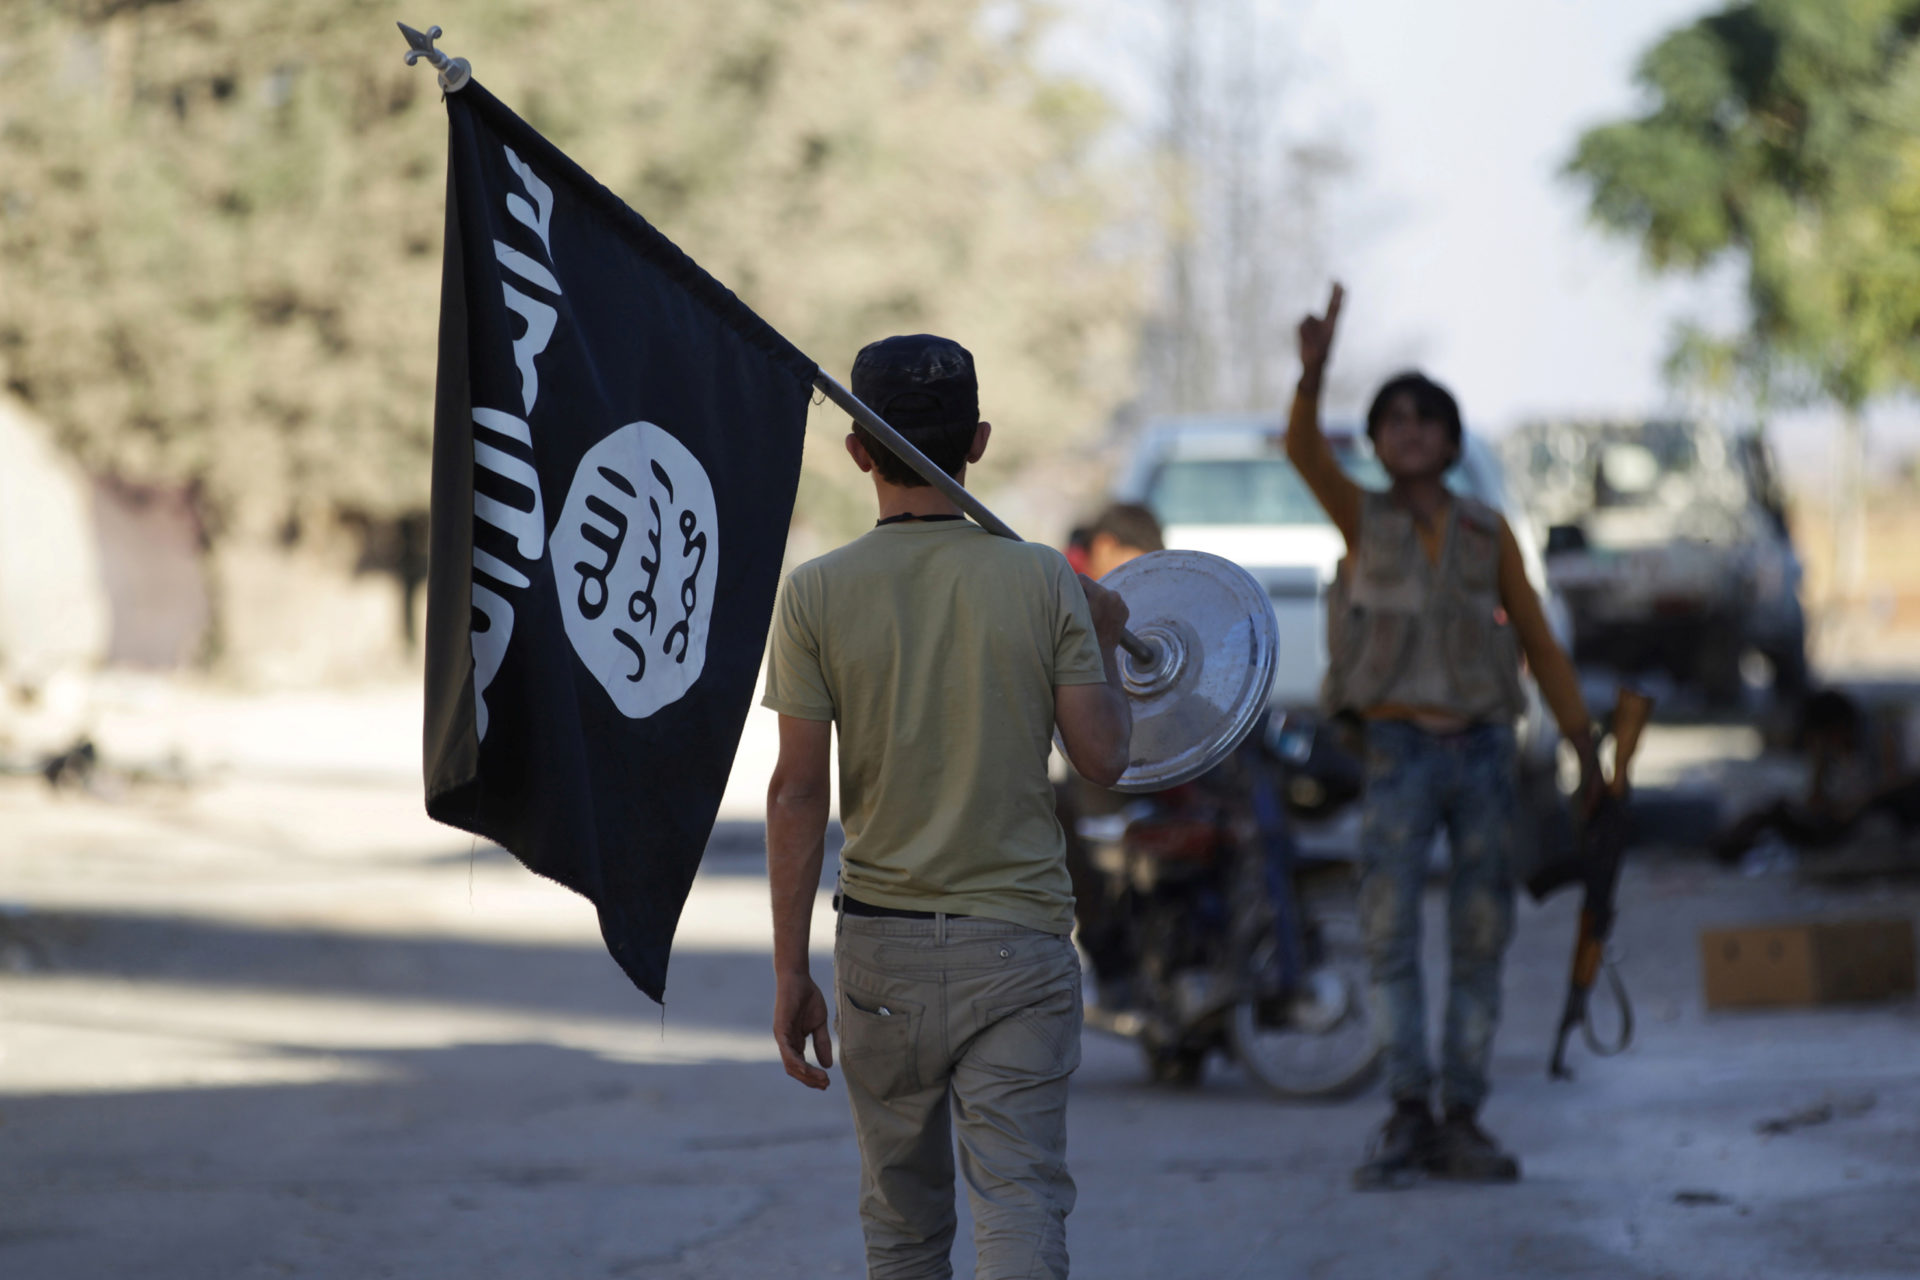 Islamic State Resurfaces in Syria